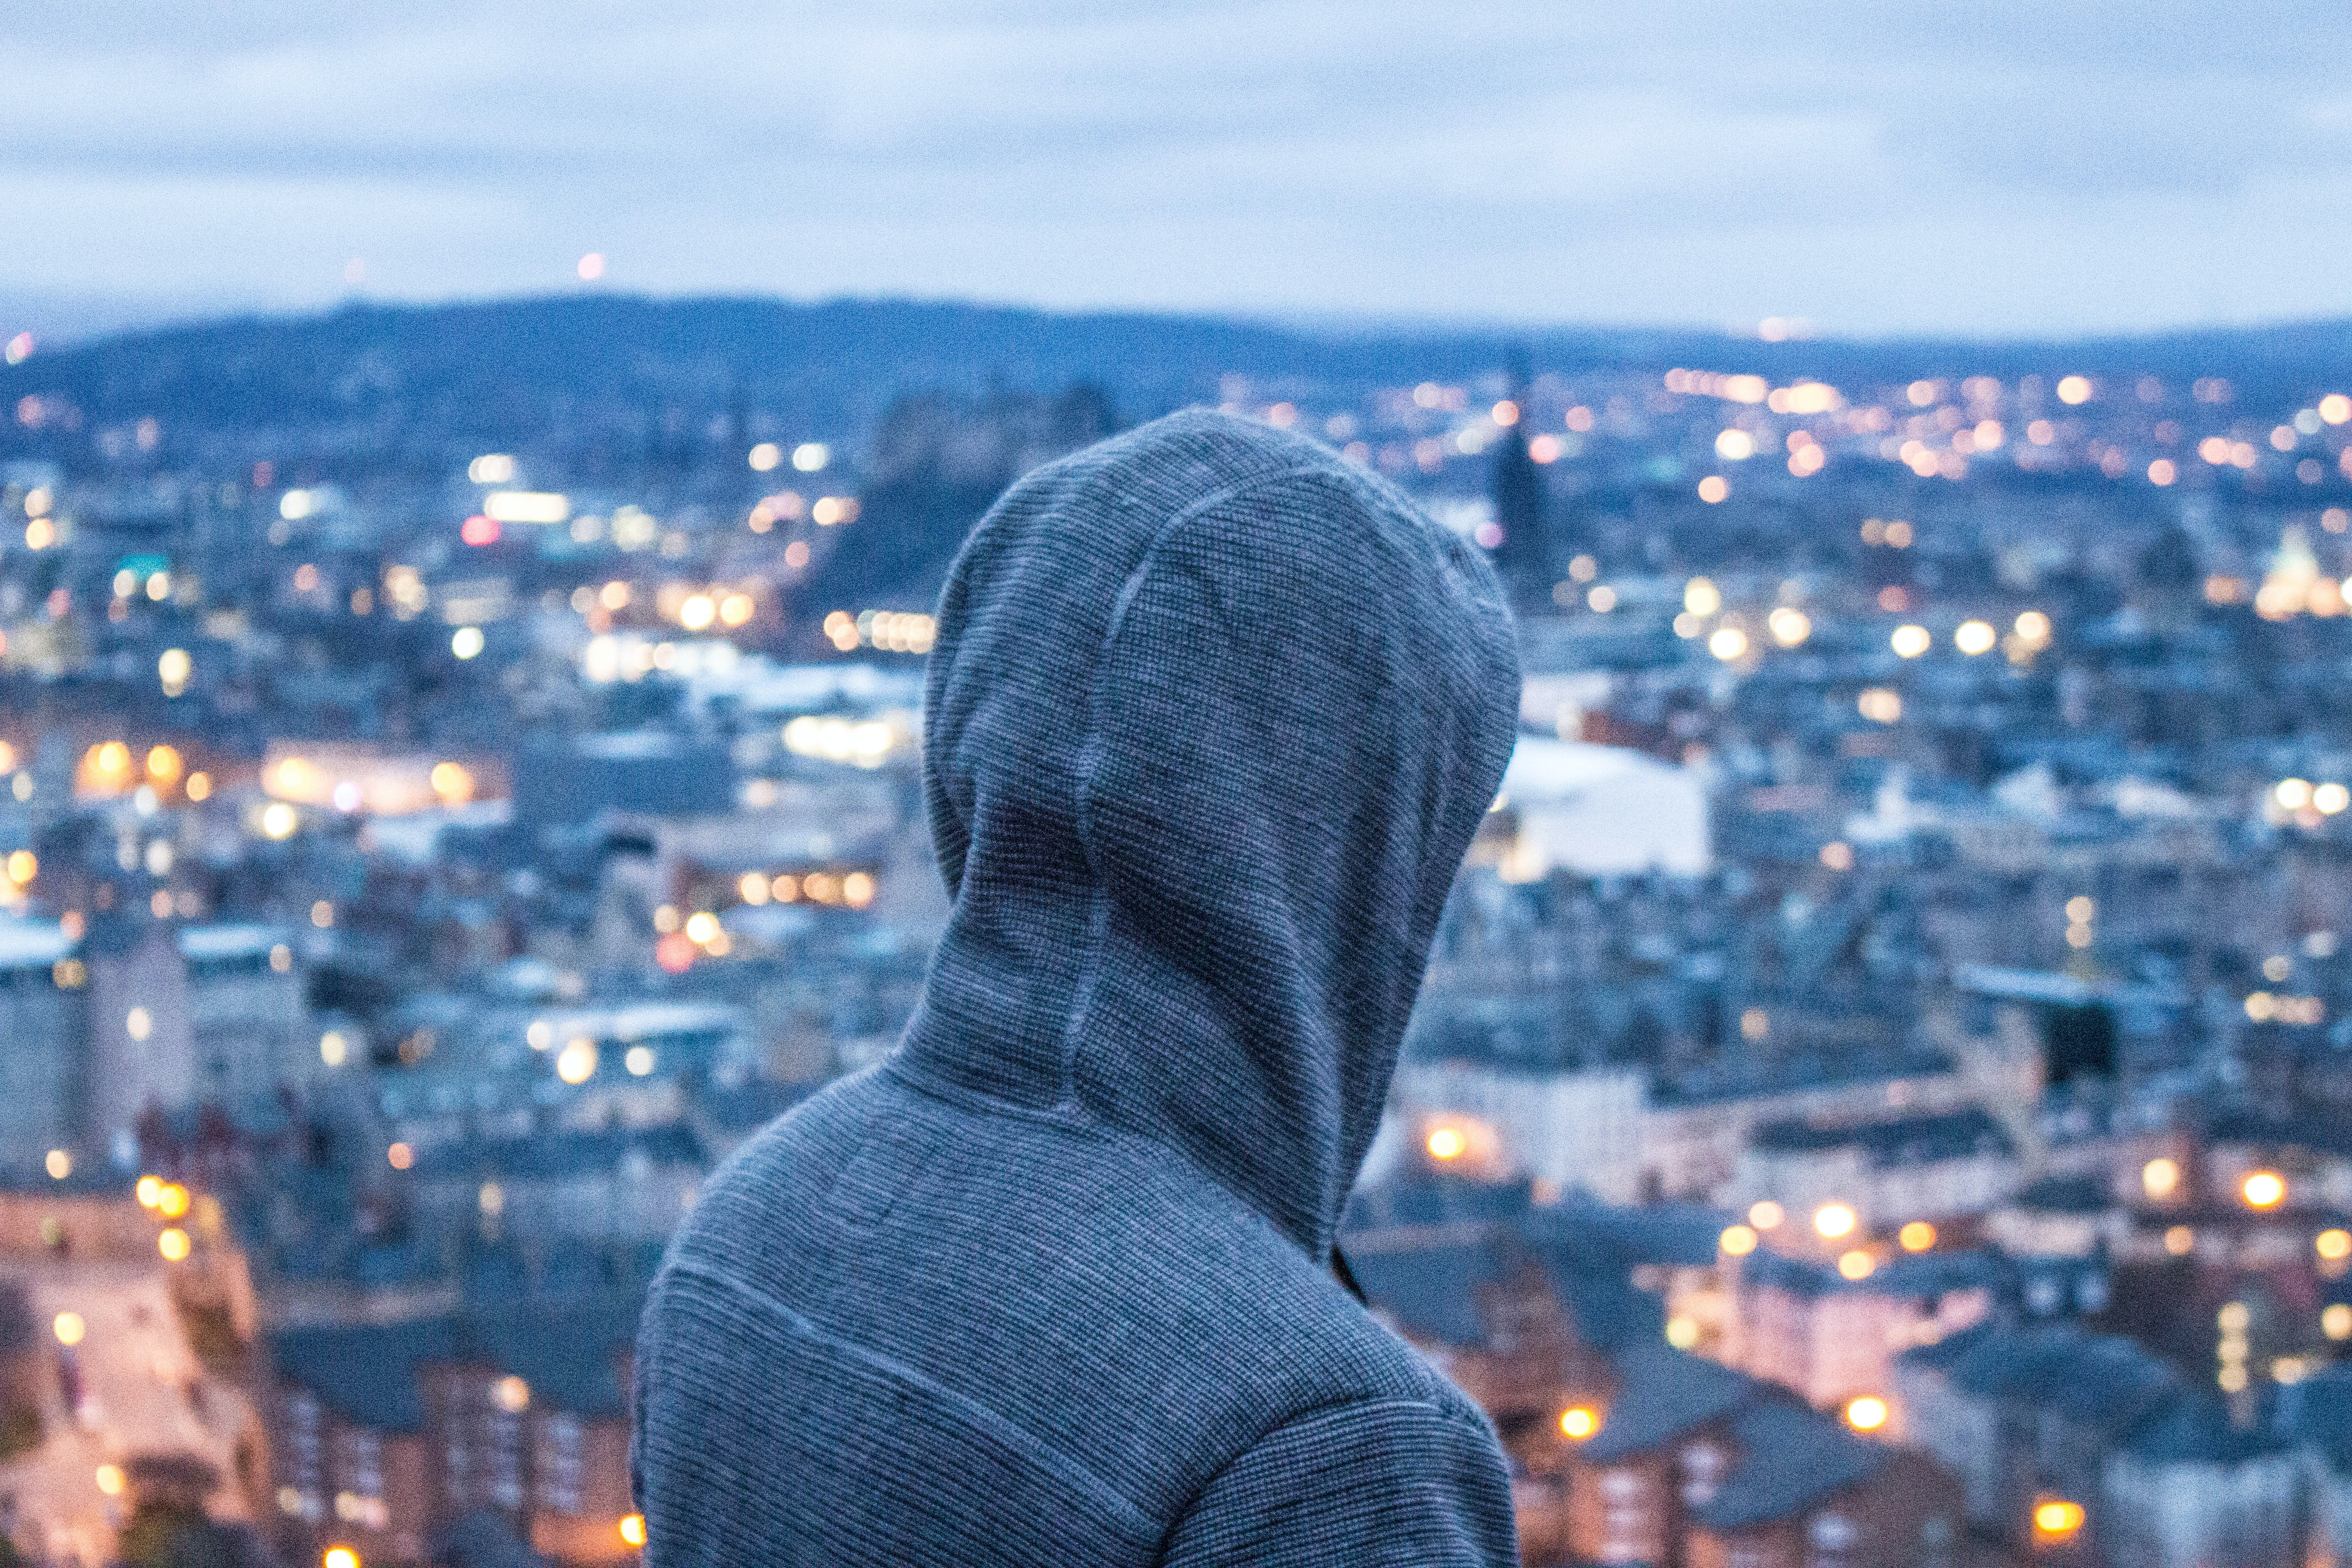 person wearing gray hoodie standing while facing aerial view of city